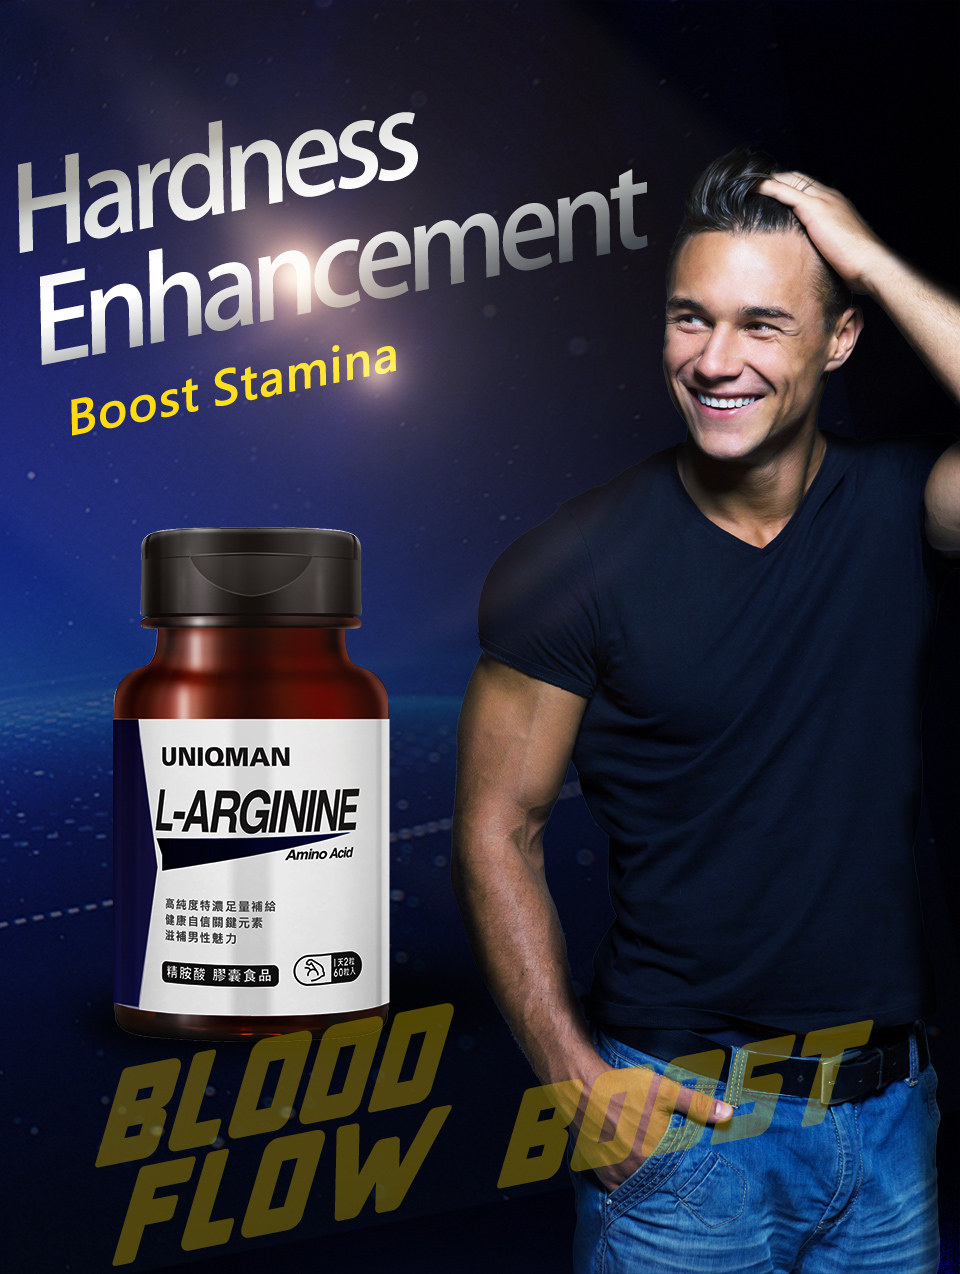 UNIQMAN L Arginine can enhance physical strength